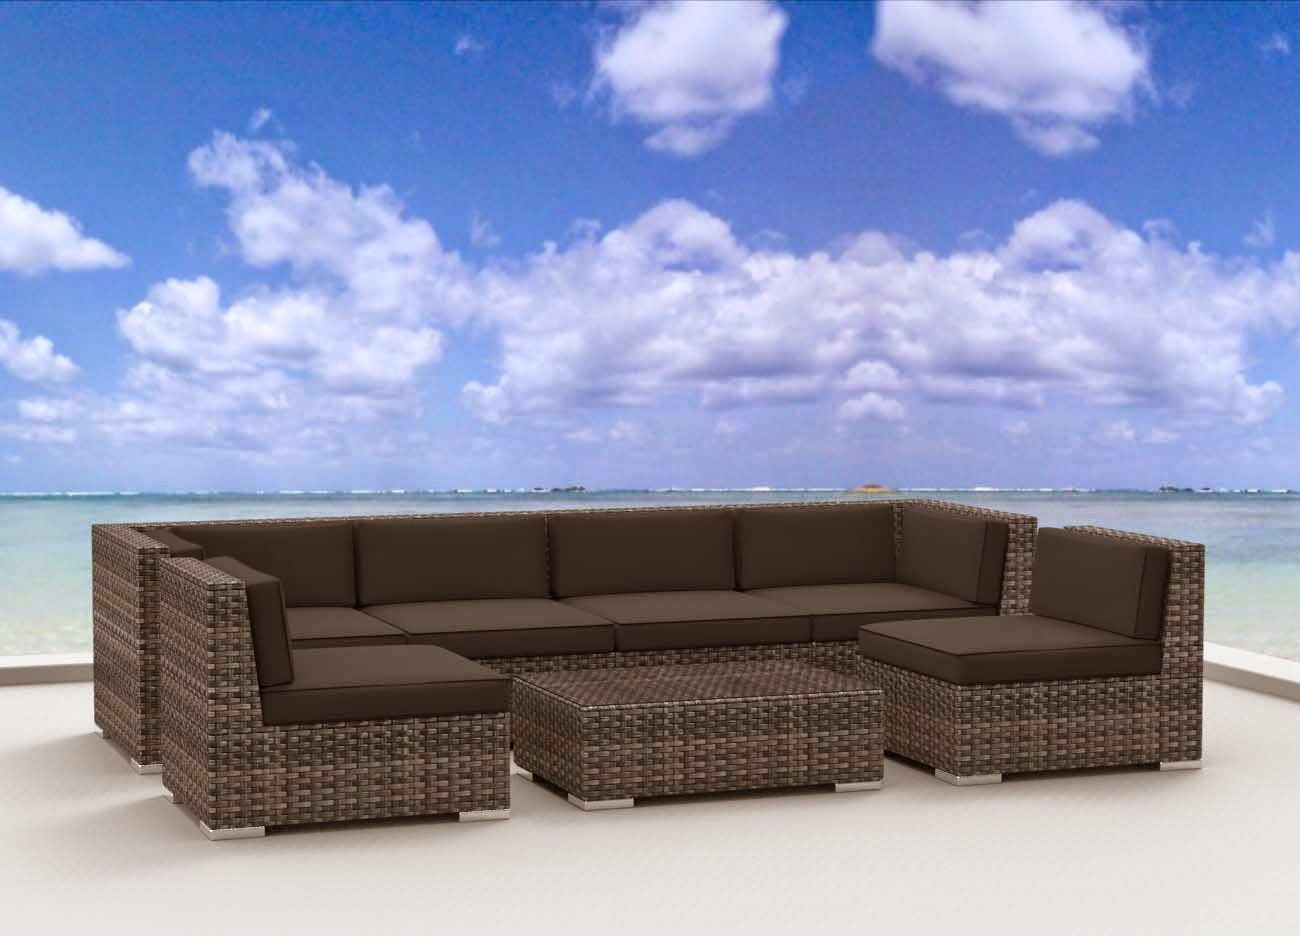 Backyard Patio Furniture :  Patio Furniture Sofa Sectional Couch Set  Outdoor Patio Furniture